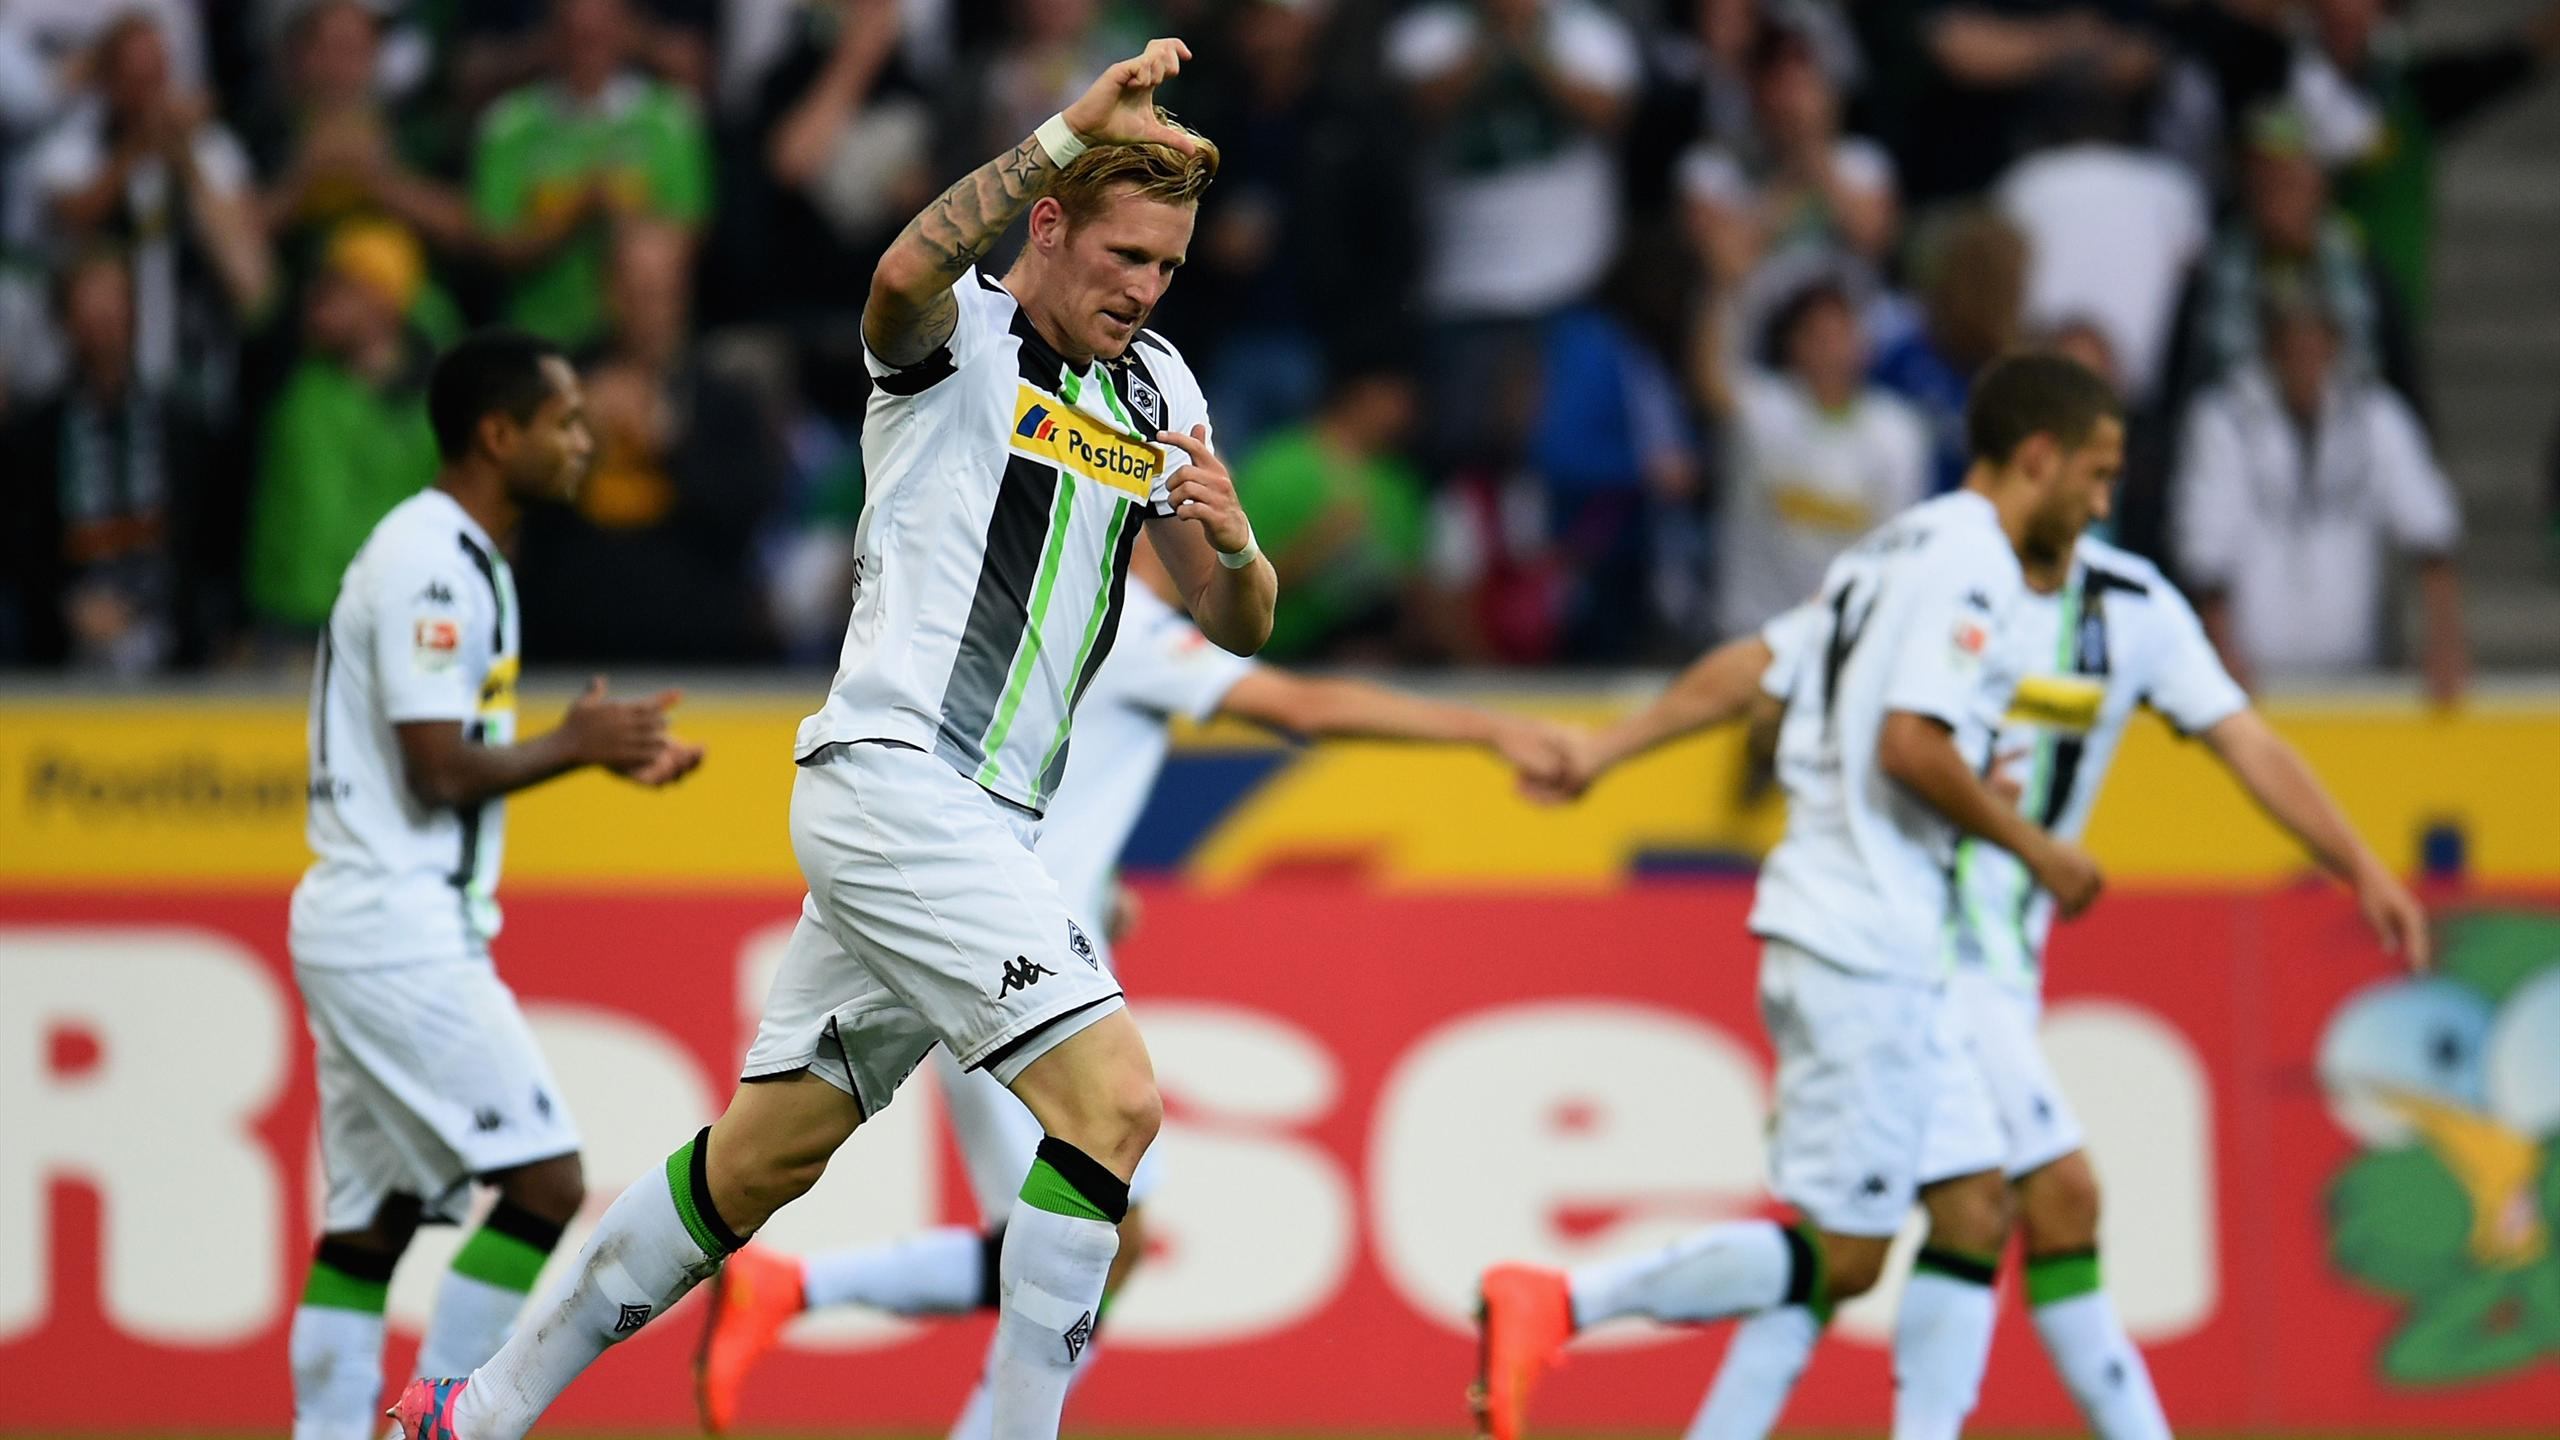 Video: Borussia M gladbach vs Schalke 04